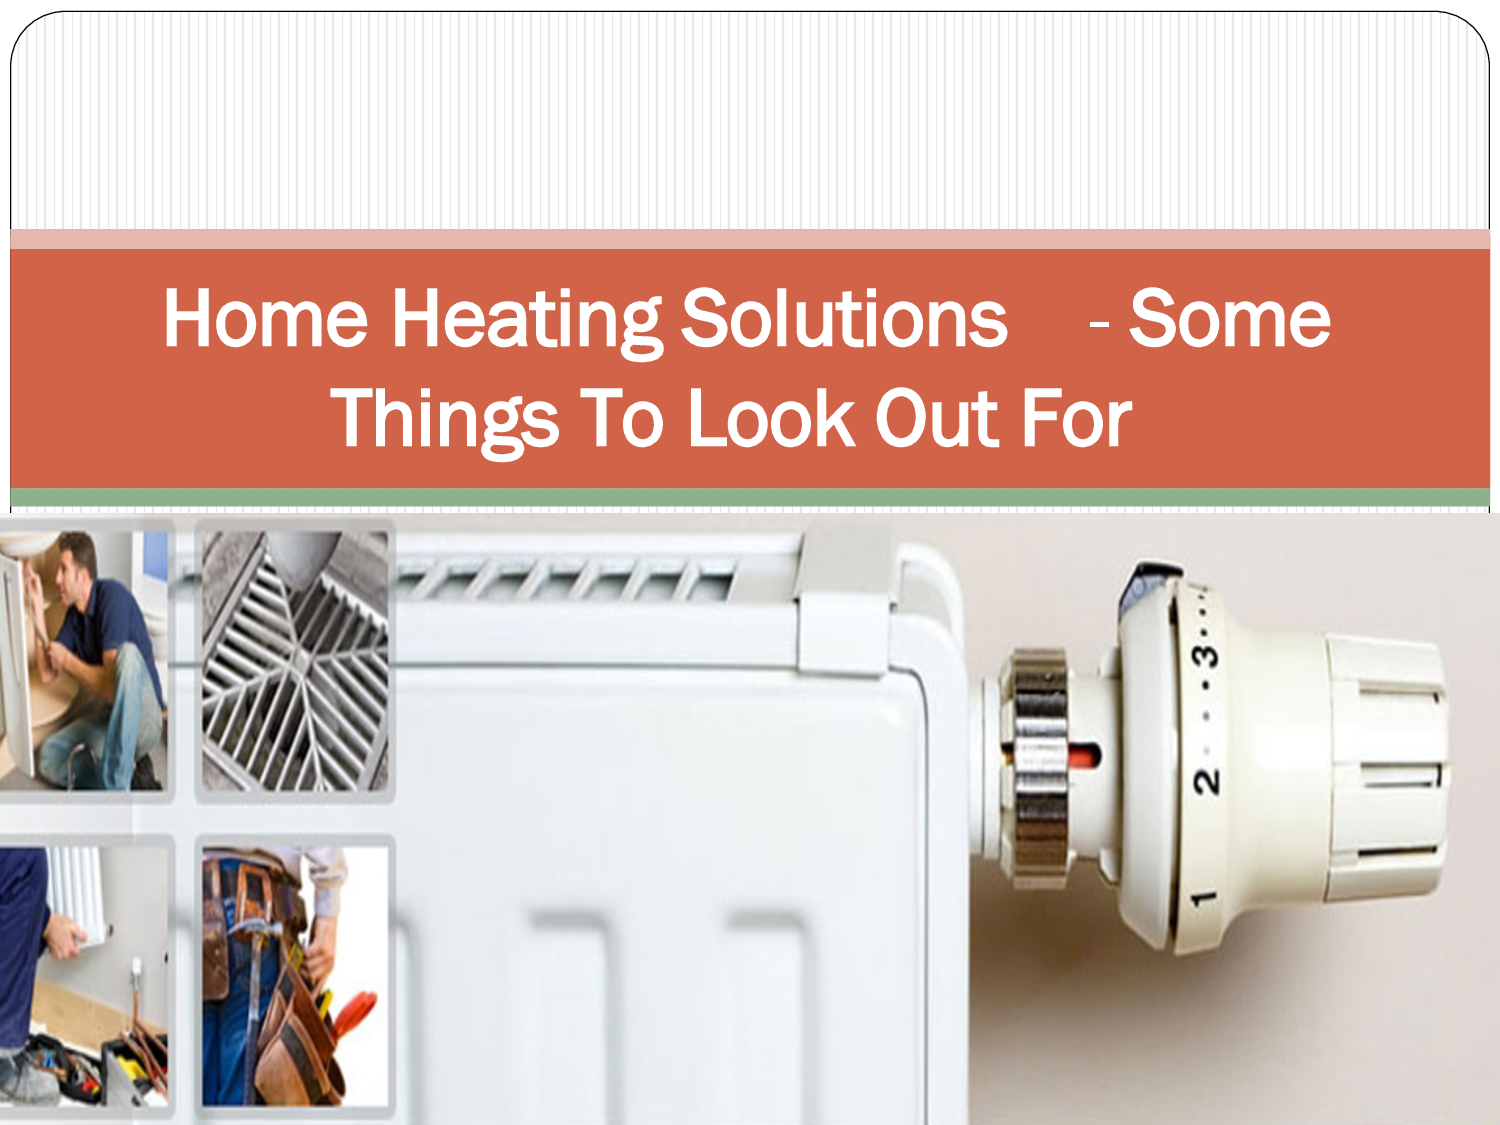 Home Heating Solutions Some Things To Look Out For Pptx Ppt